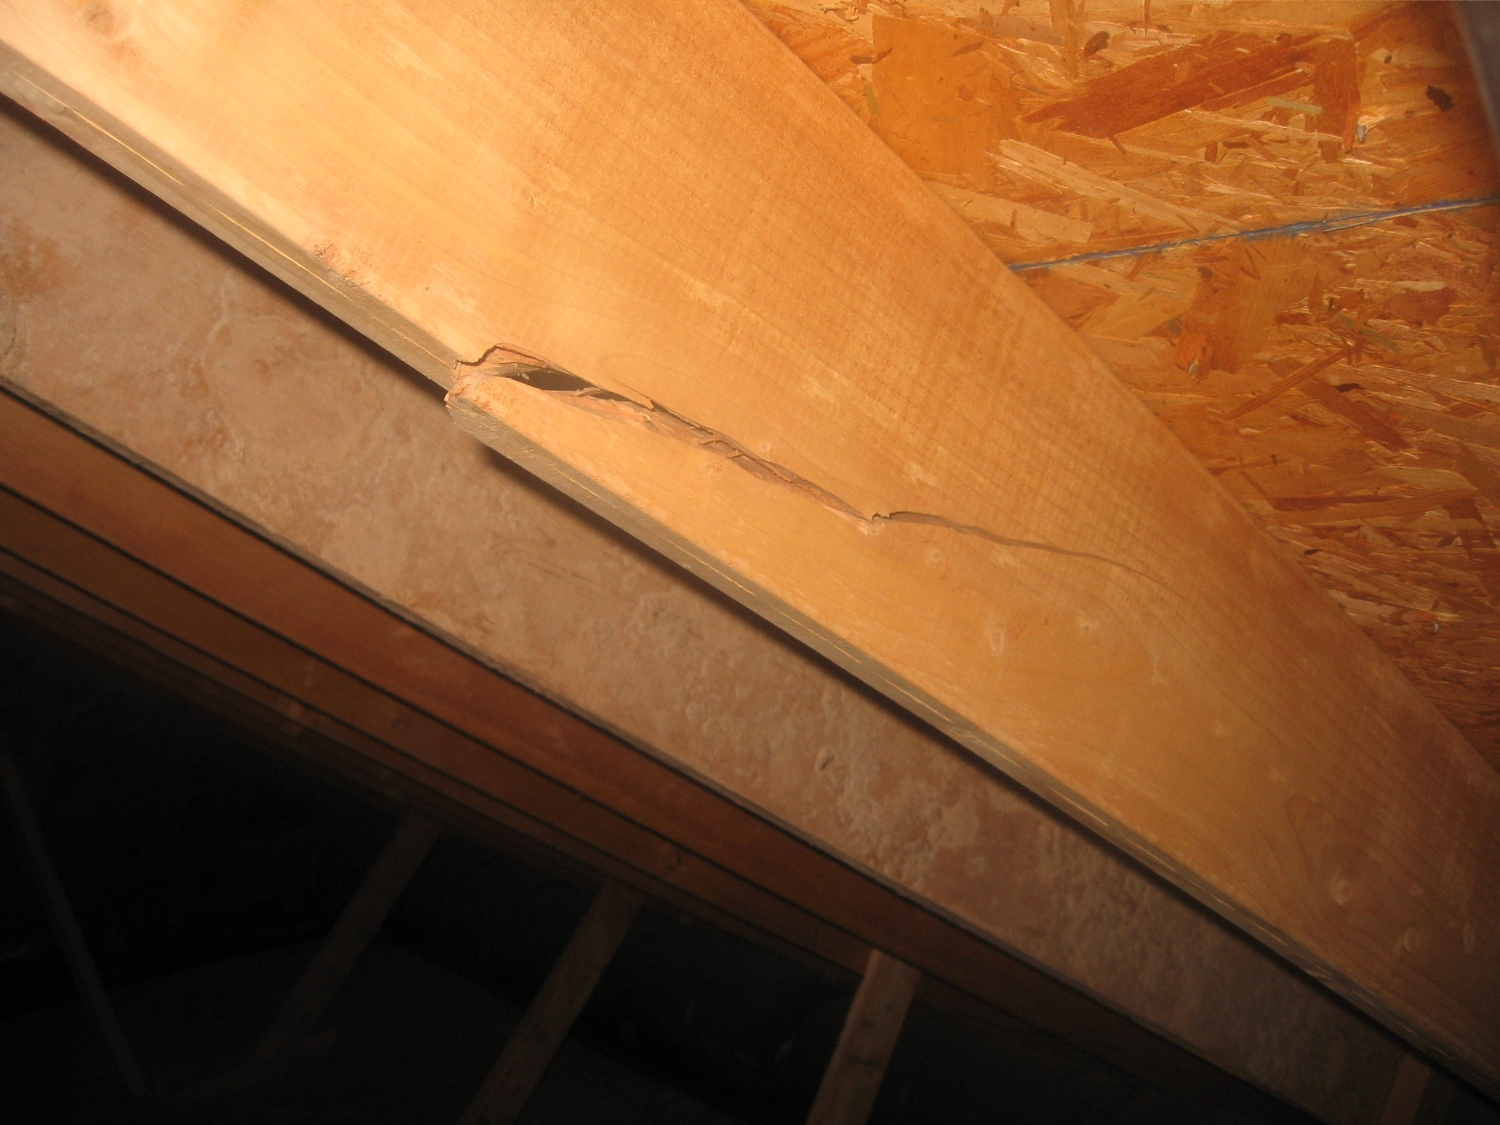 Img 2515 Jpg Roof Rafter Ed How Bad 2517